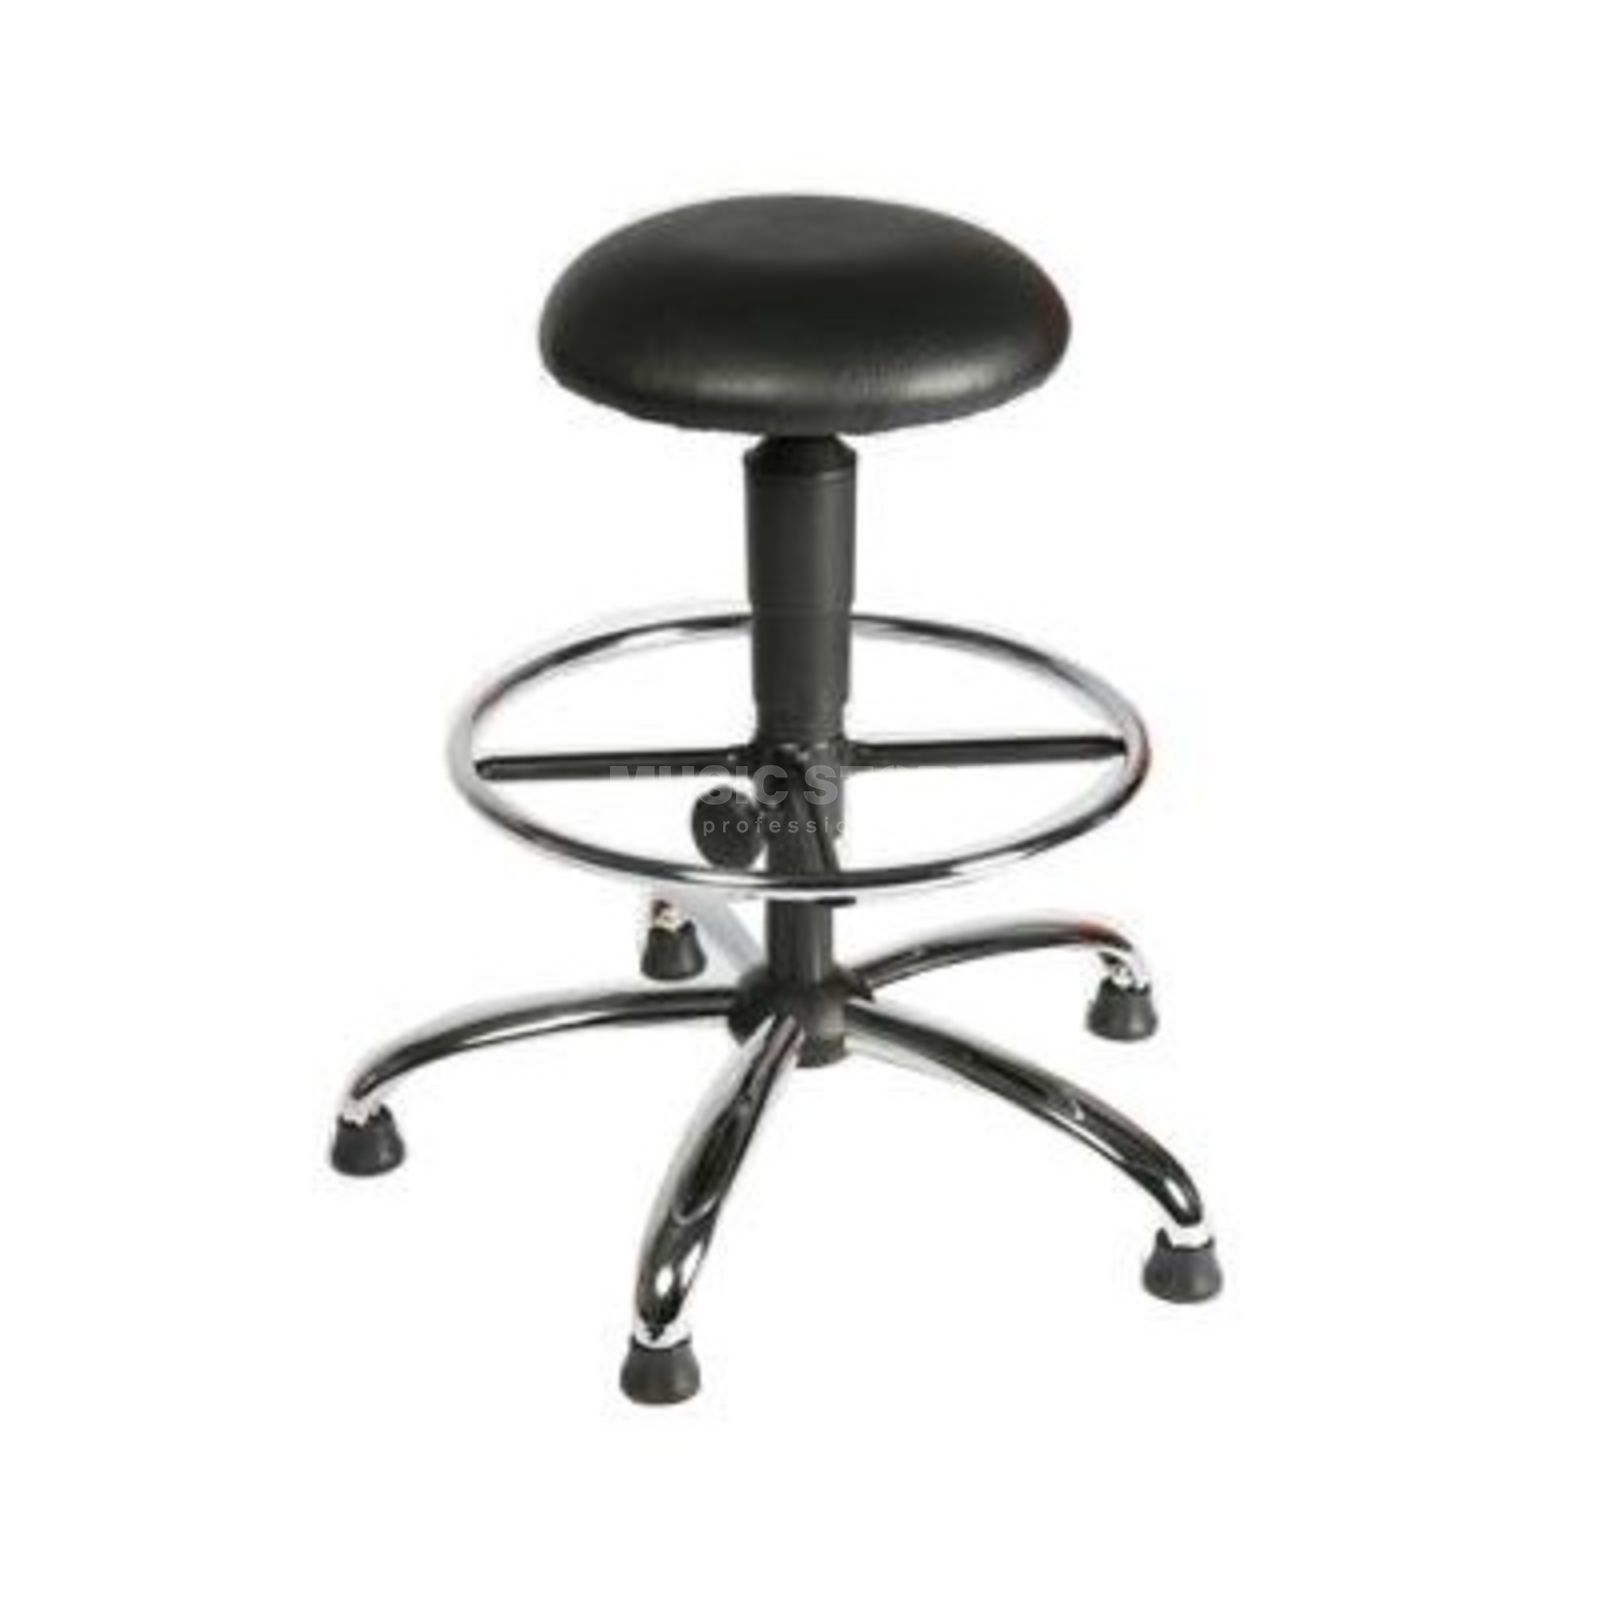 Mey Chair Systems Hocker A18-H-KL-FR5/11-34 schwarz Produktbild